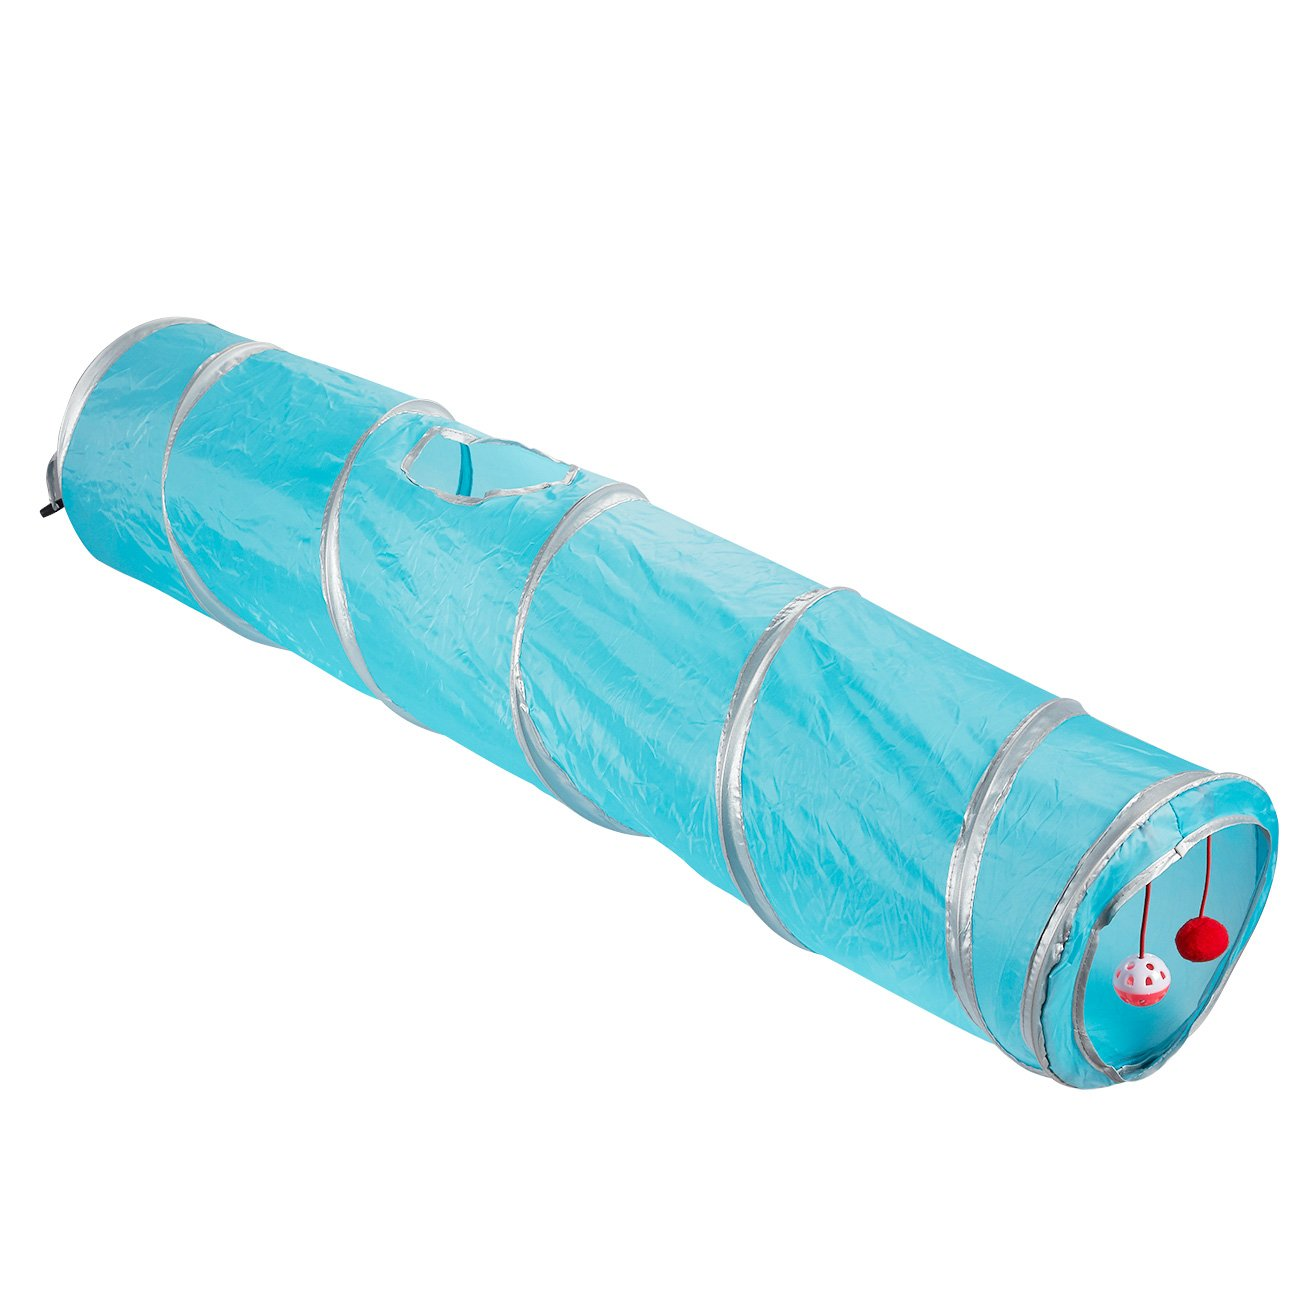 Juvale Pack of 1 Pet Agility Play Tunnel Tube Accessory Gift Pet Training Toy for Small Pets, Dogs, Cats, Rabbits, Teal 47 x 9.75 inches